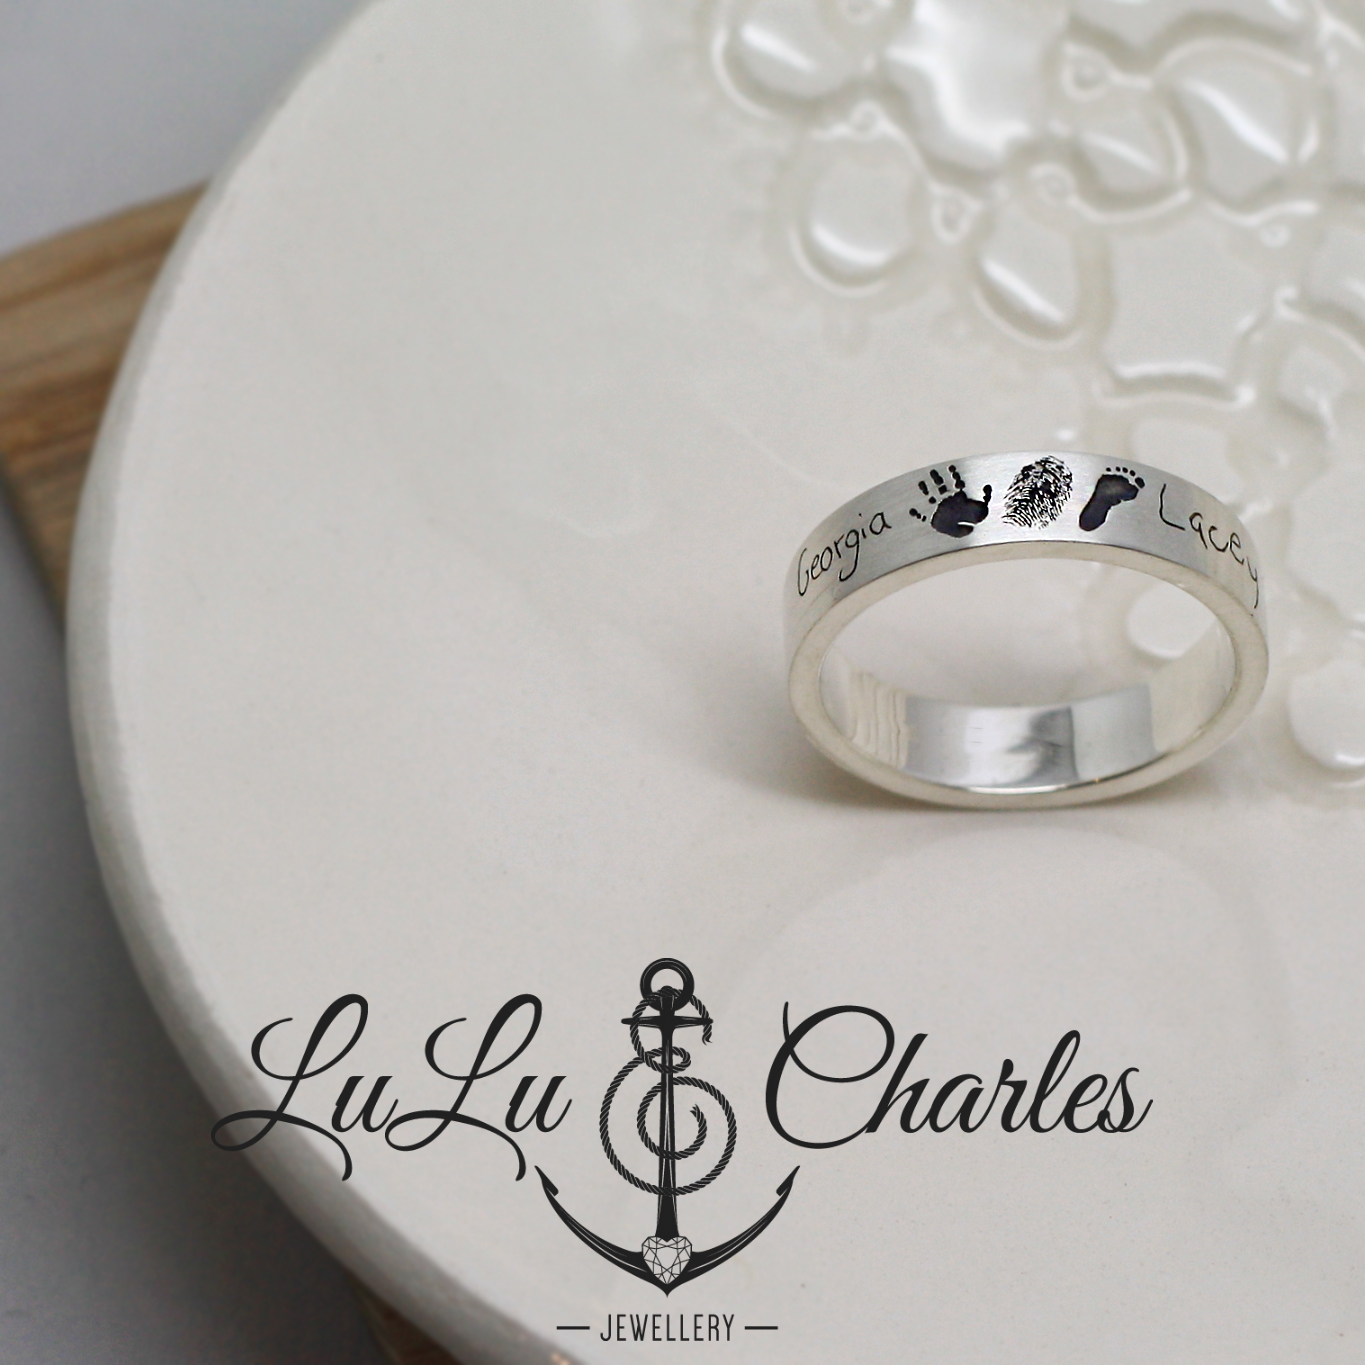 A gorgeous personalised Argentium Silver Ring, personalised with hand written names, a miniaturised handprint, footprint & fingerprint, by LuLu & Charles Jewellery, Handmade Jewellery County Durham, Newcastle, Northumberland UK.